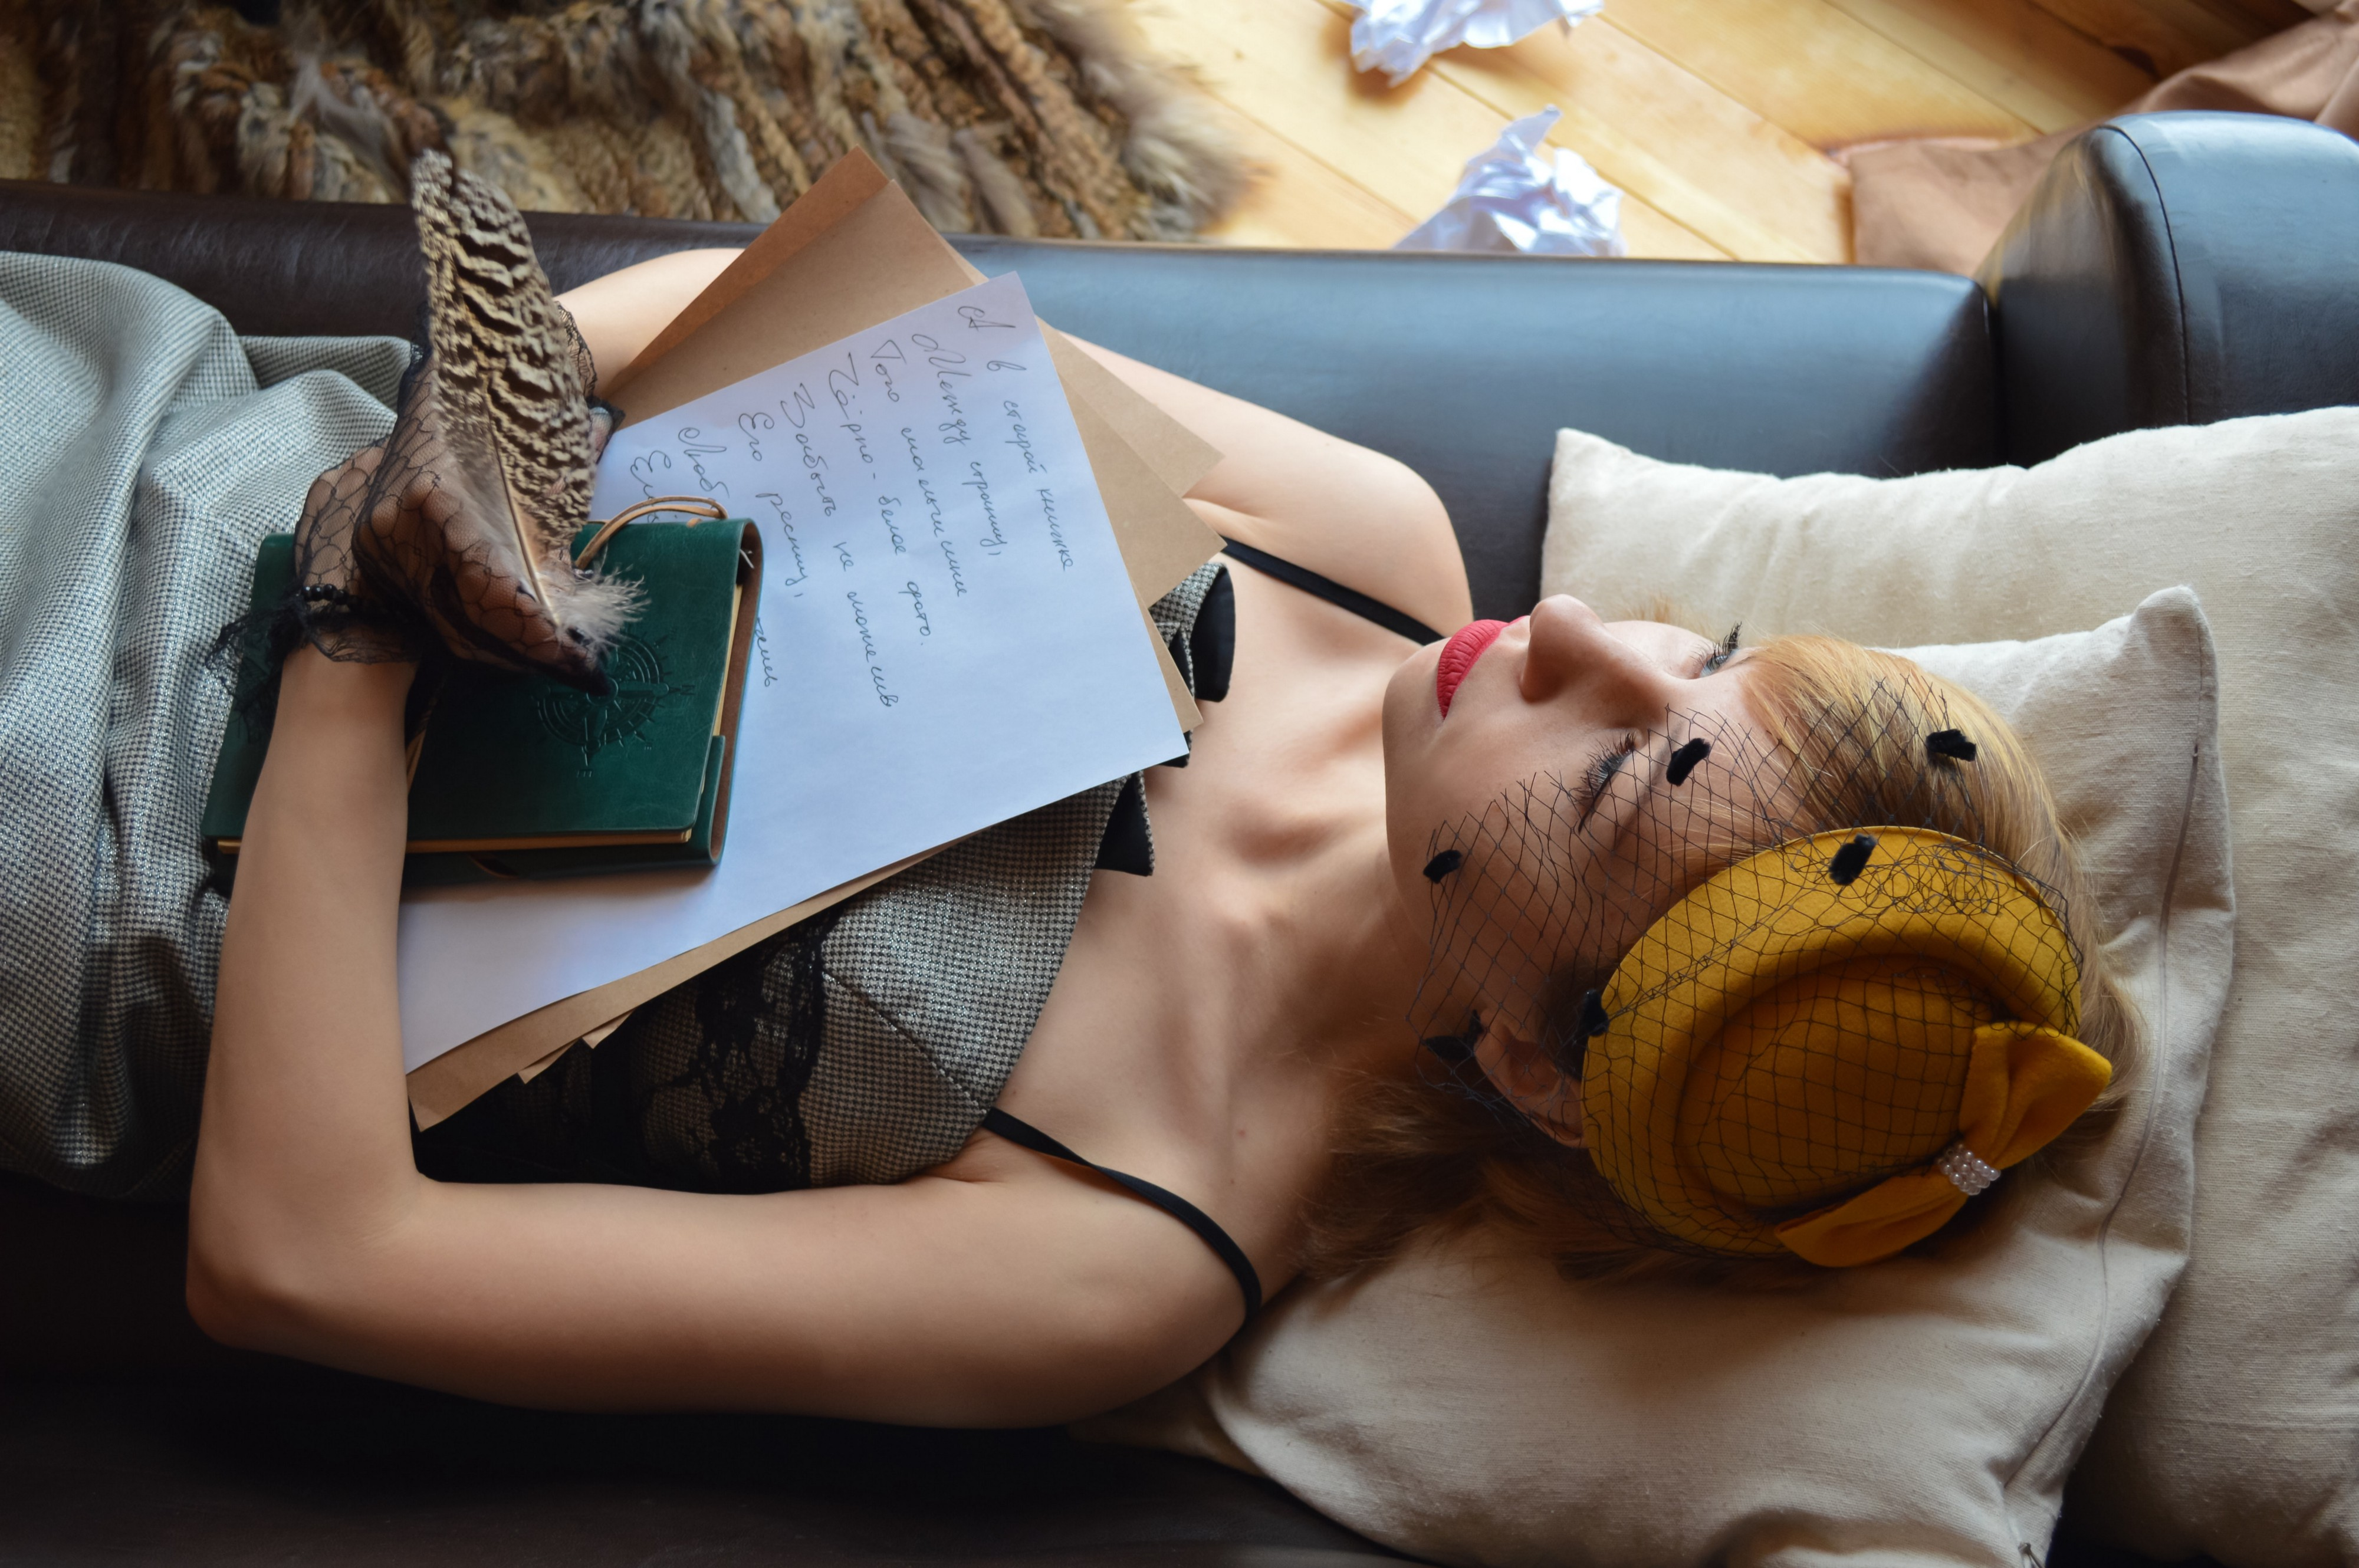 Elegant woman dressed in vintage attire, laying on a couch. She is holding papers, a notebook, and a feathered pen. Crumpled papers lay on the wooden floor behind the couch.